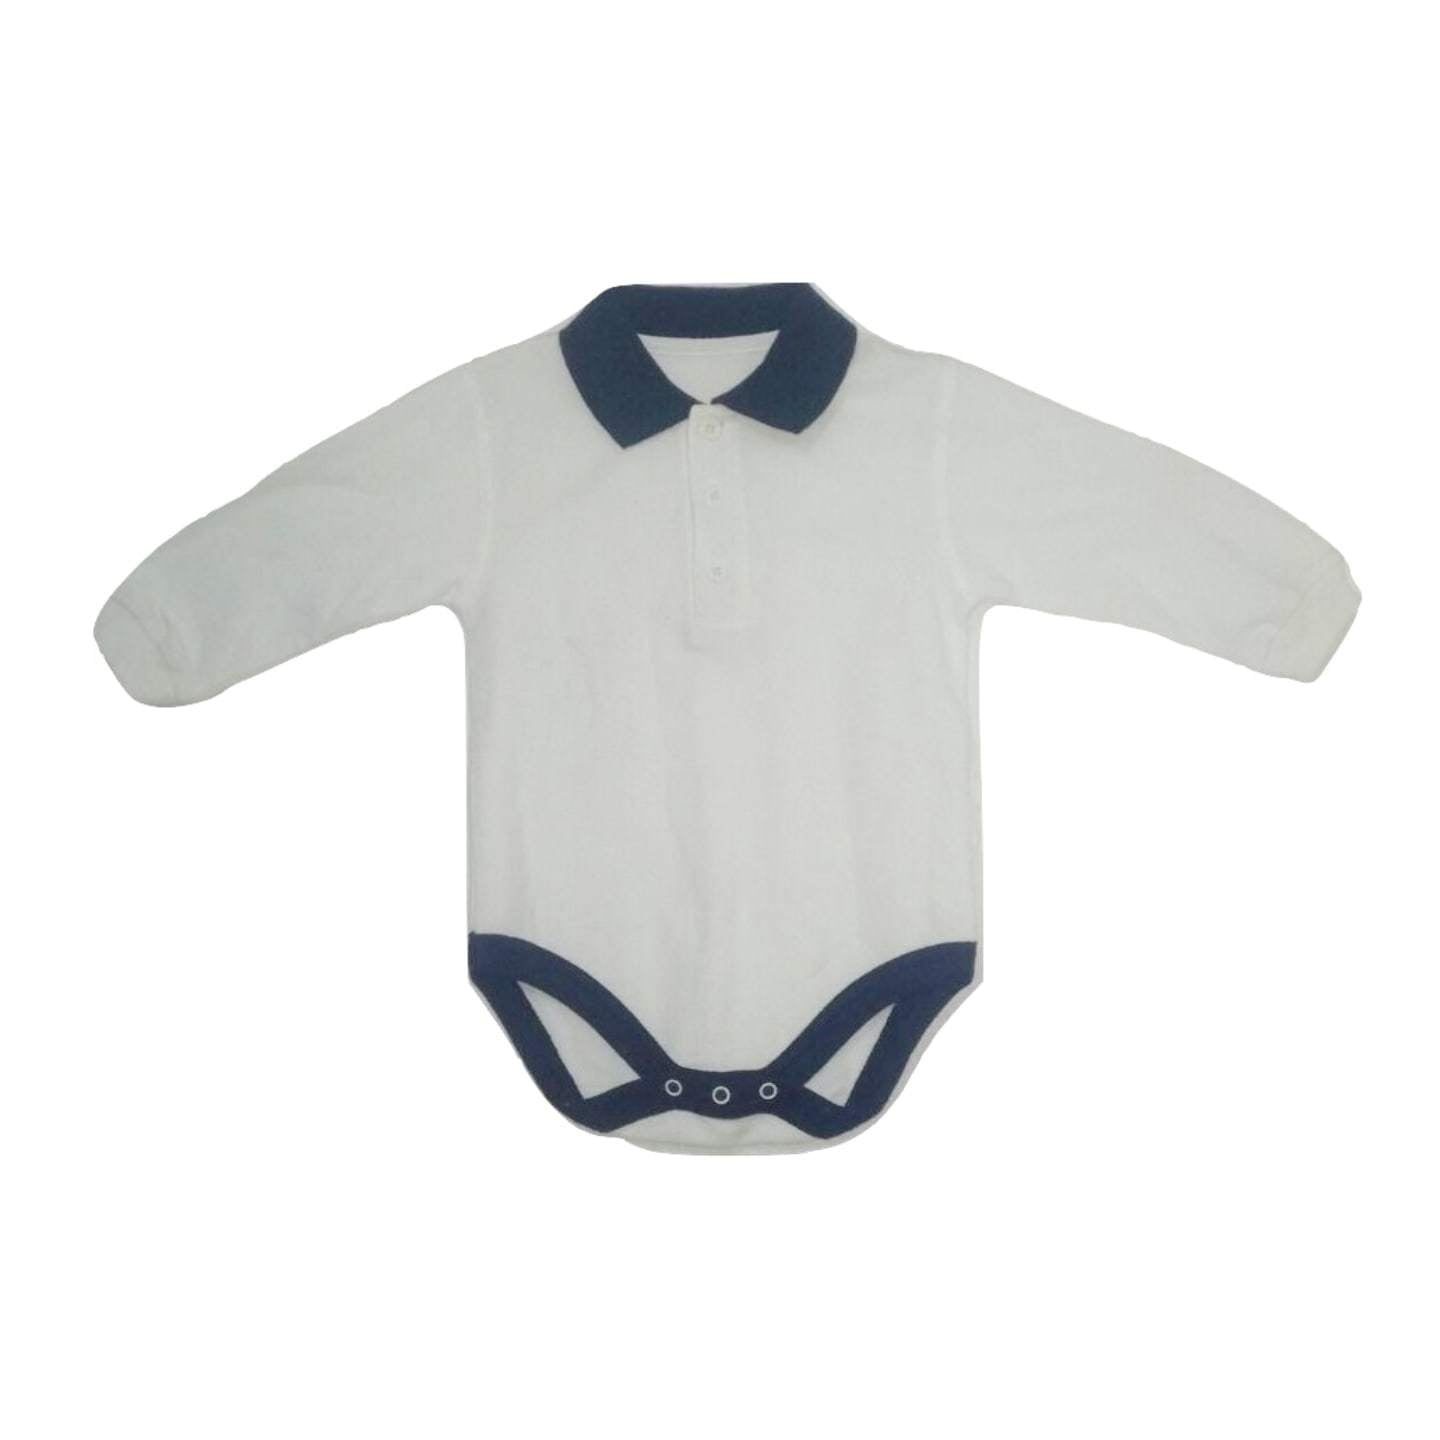 Longsleeve White with Navy Collar detail Rugby Bodysuit